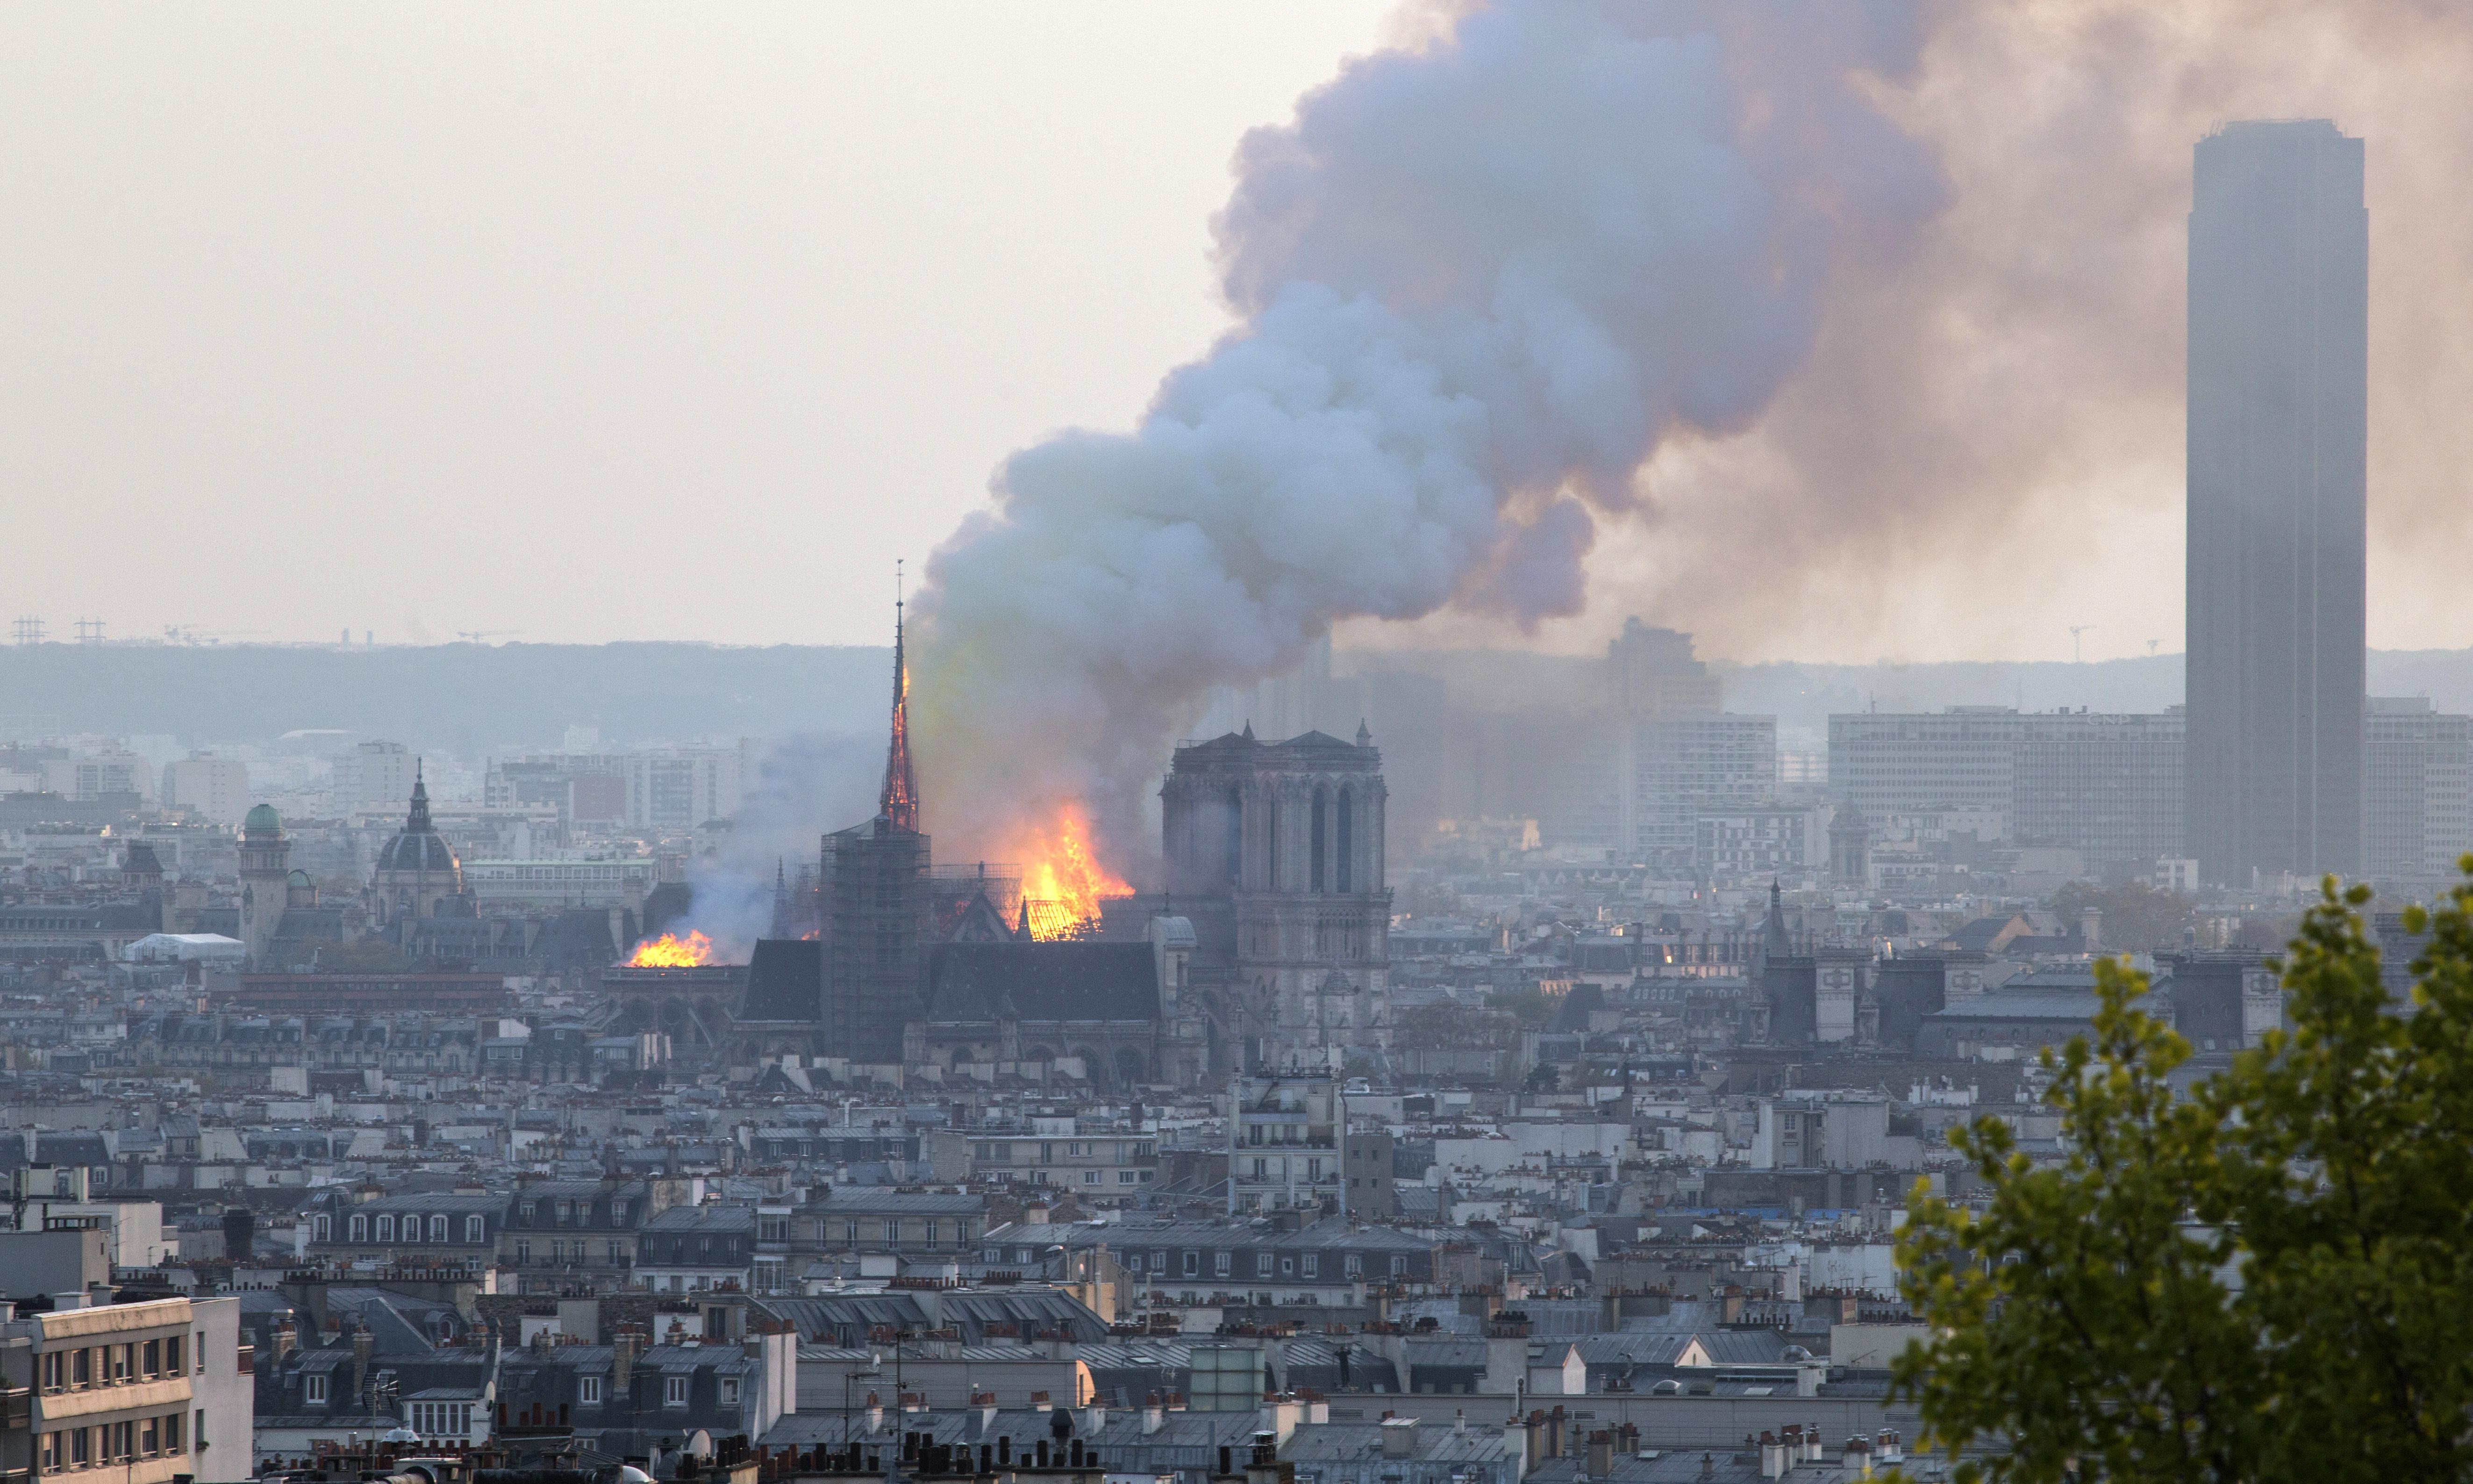 Notre Dame fire: Paris cathedral devastated by ferocious blaze